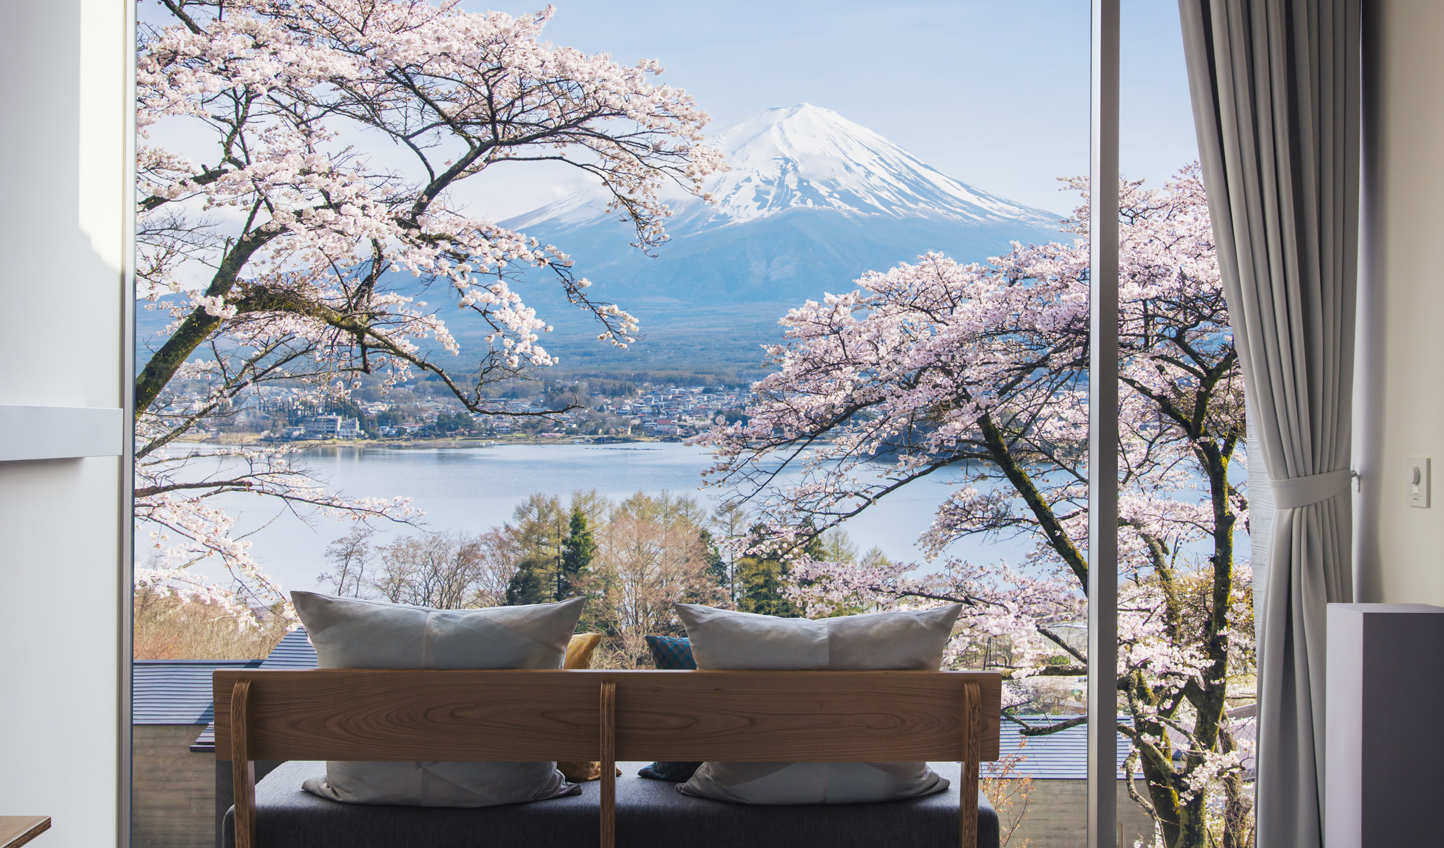 Visit during cherry blossom season for postcard worthy views of Mt. Fuji